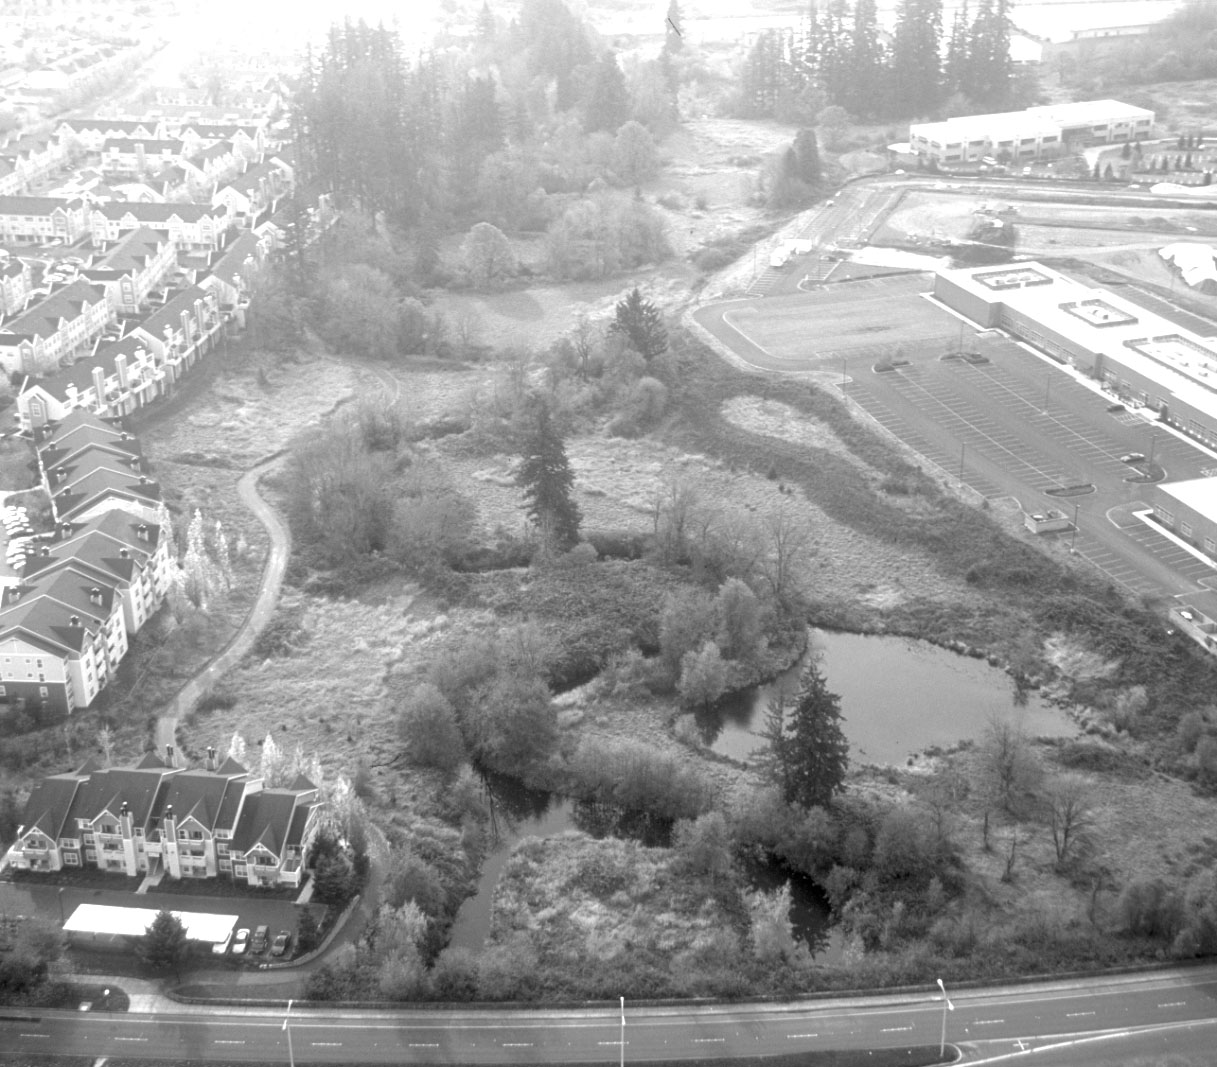 black and white image from airplane, ponds and stream amidst track homes